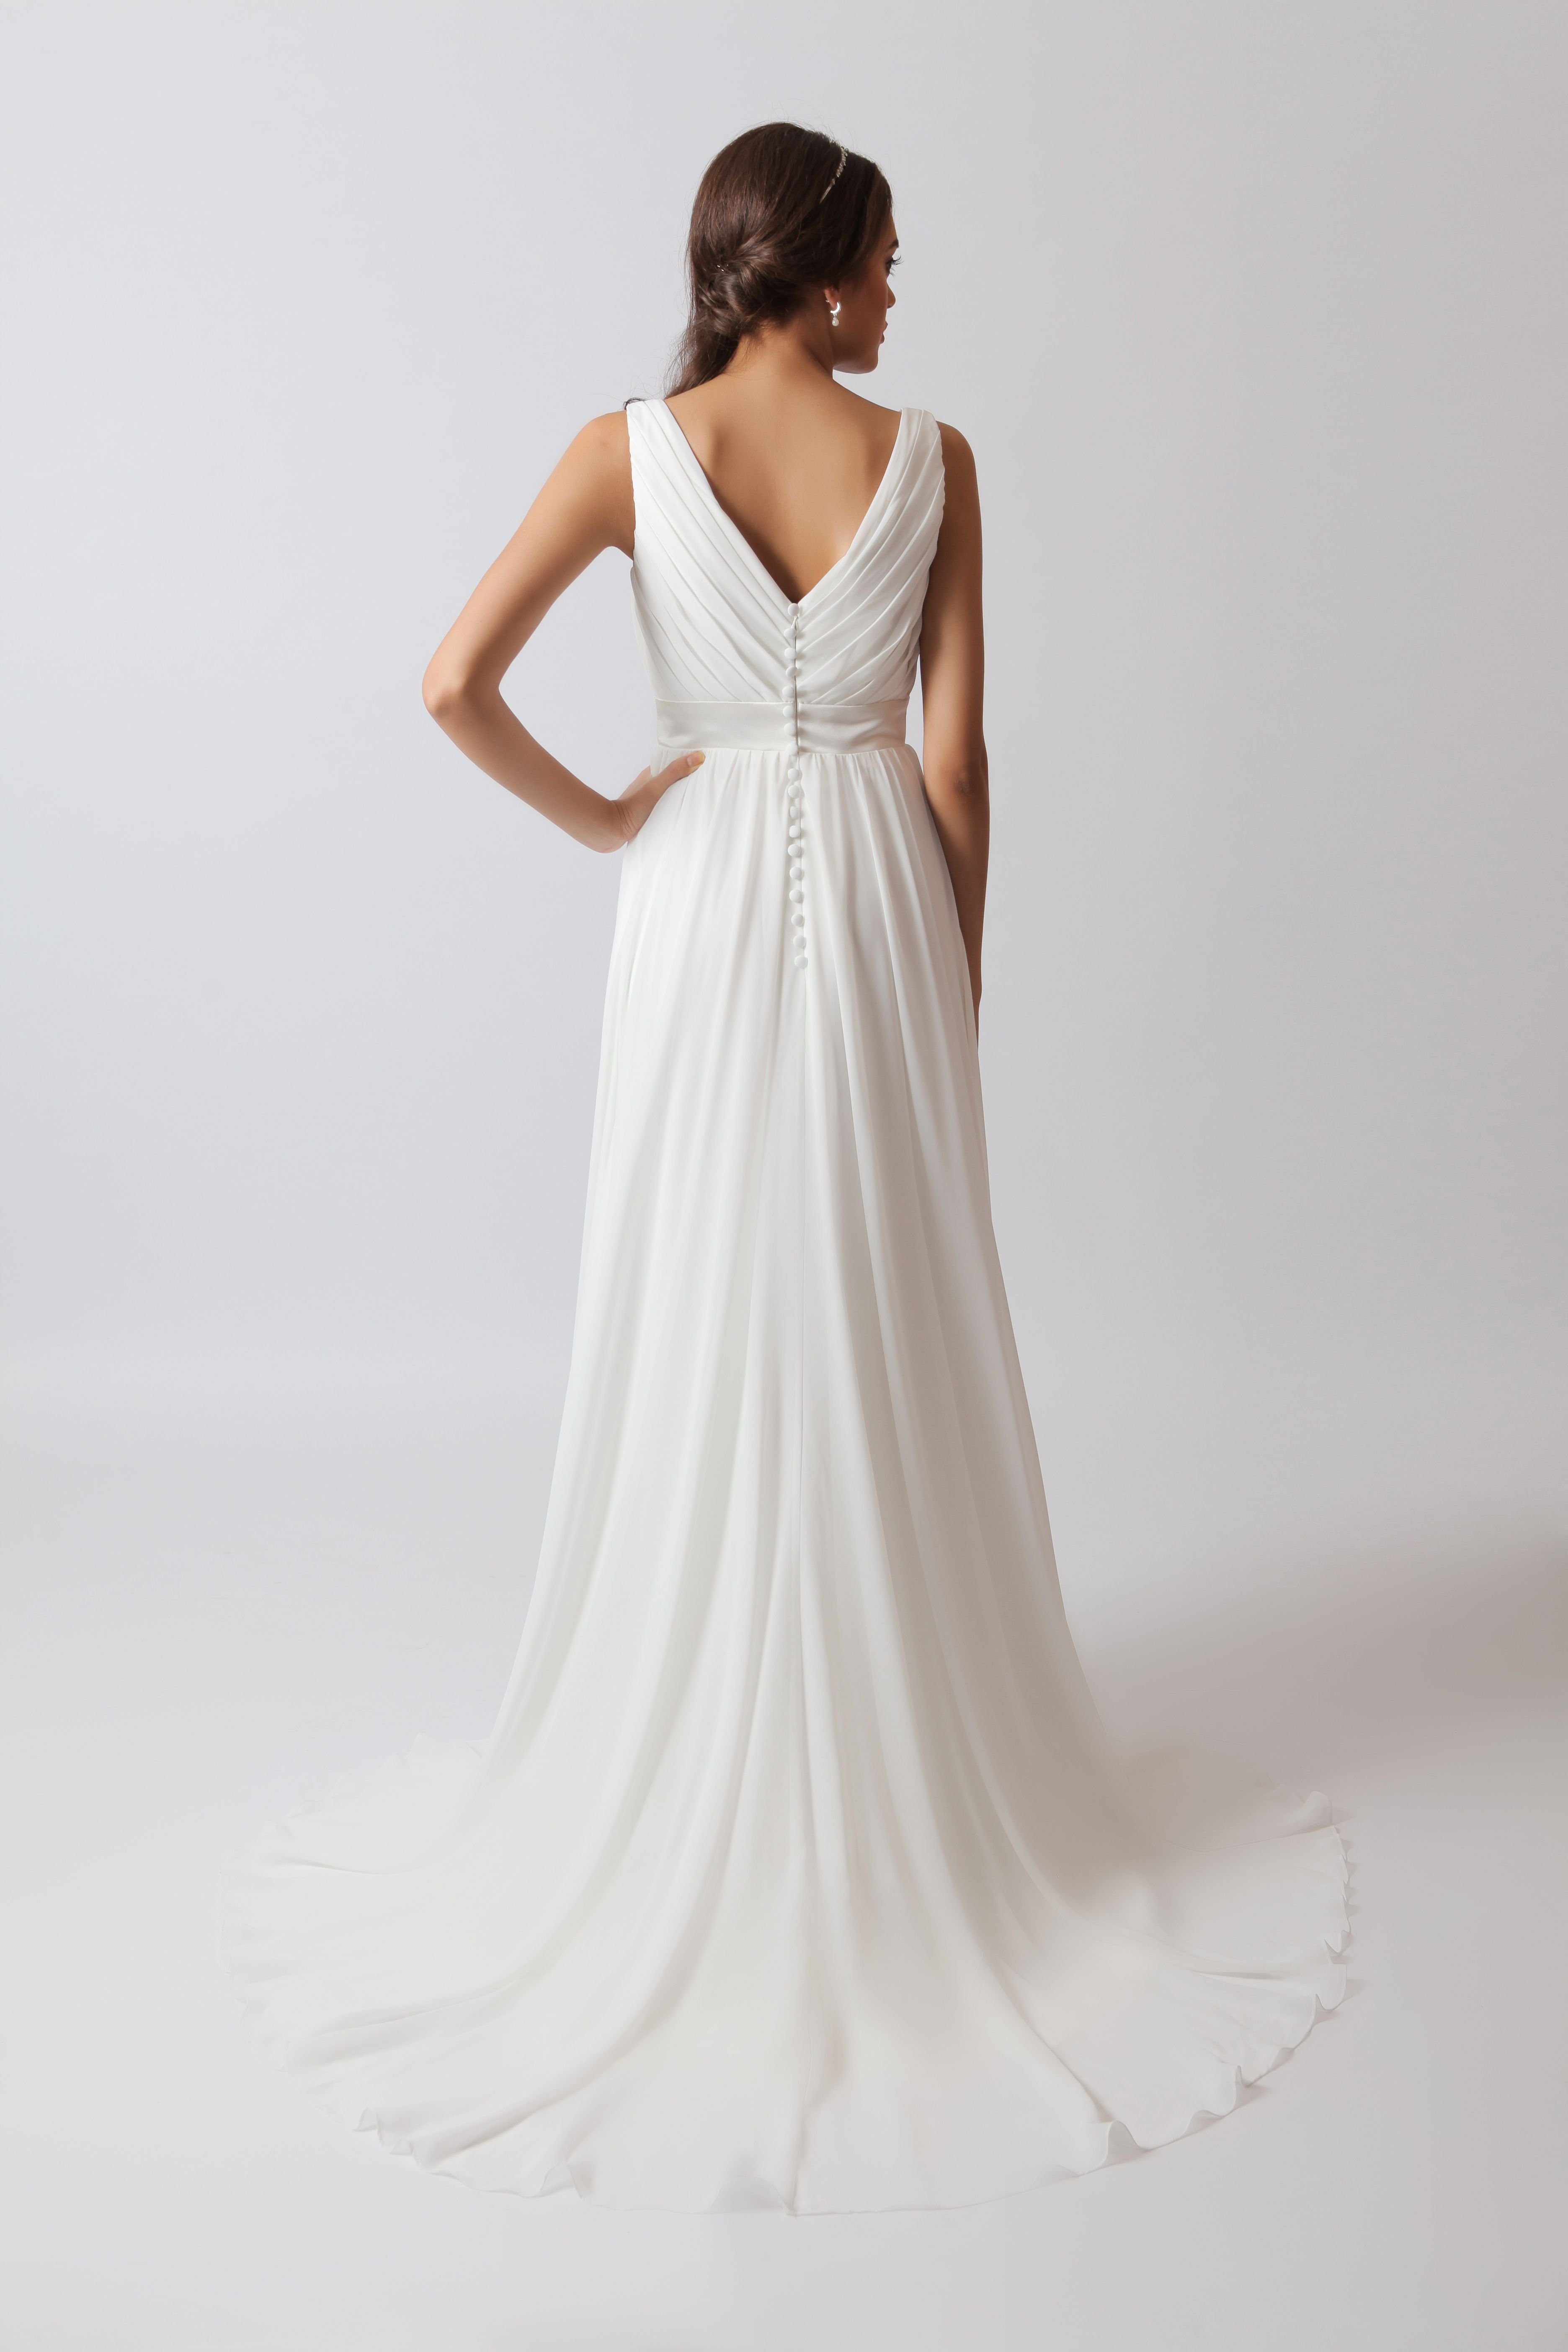 Melody A Simple Yet Elegant Gown The V Neck And Back Are